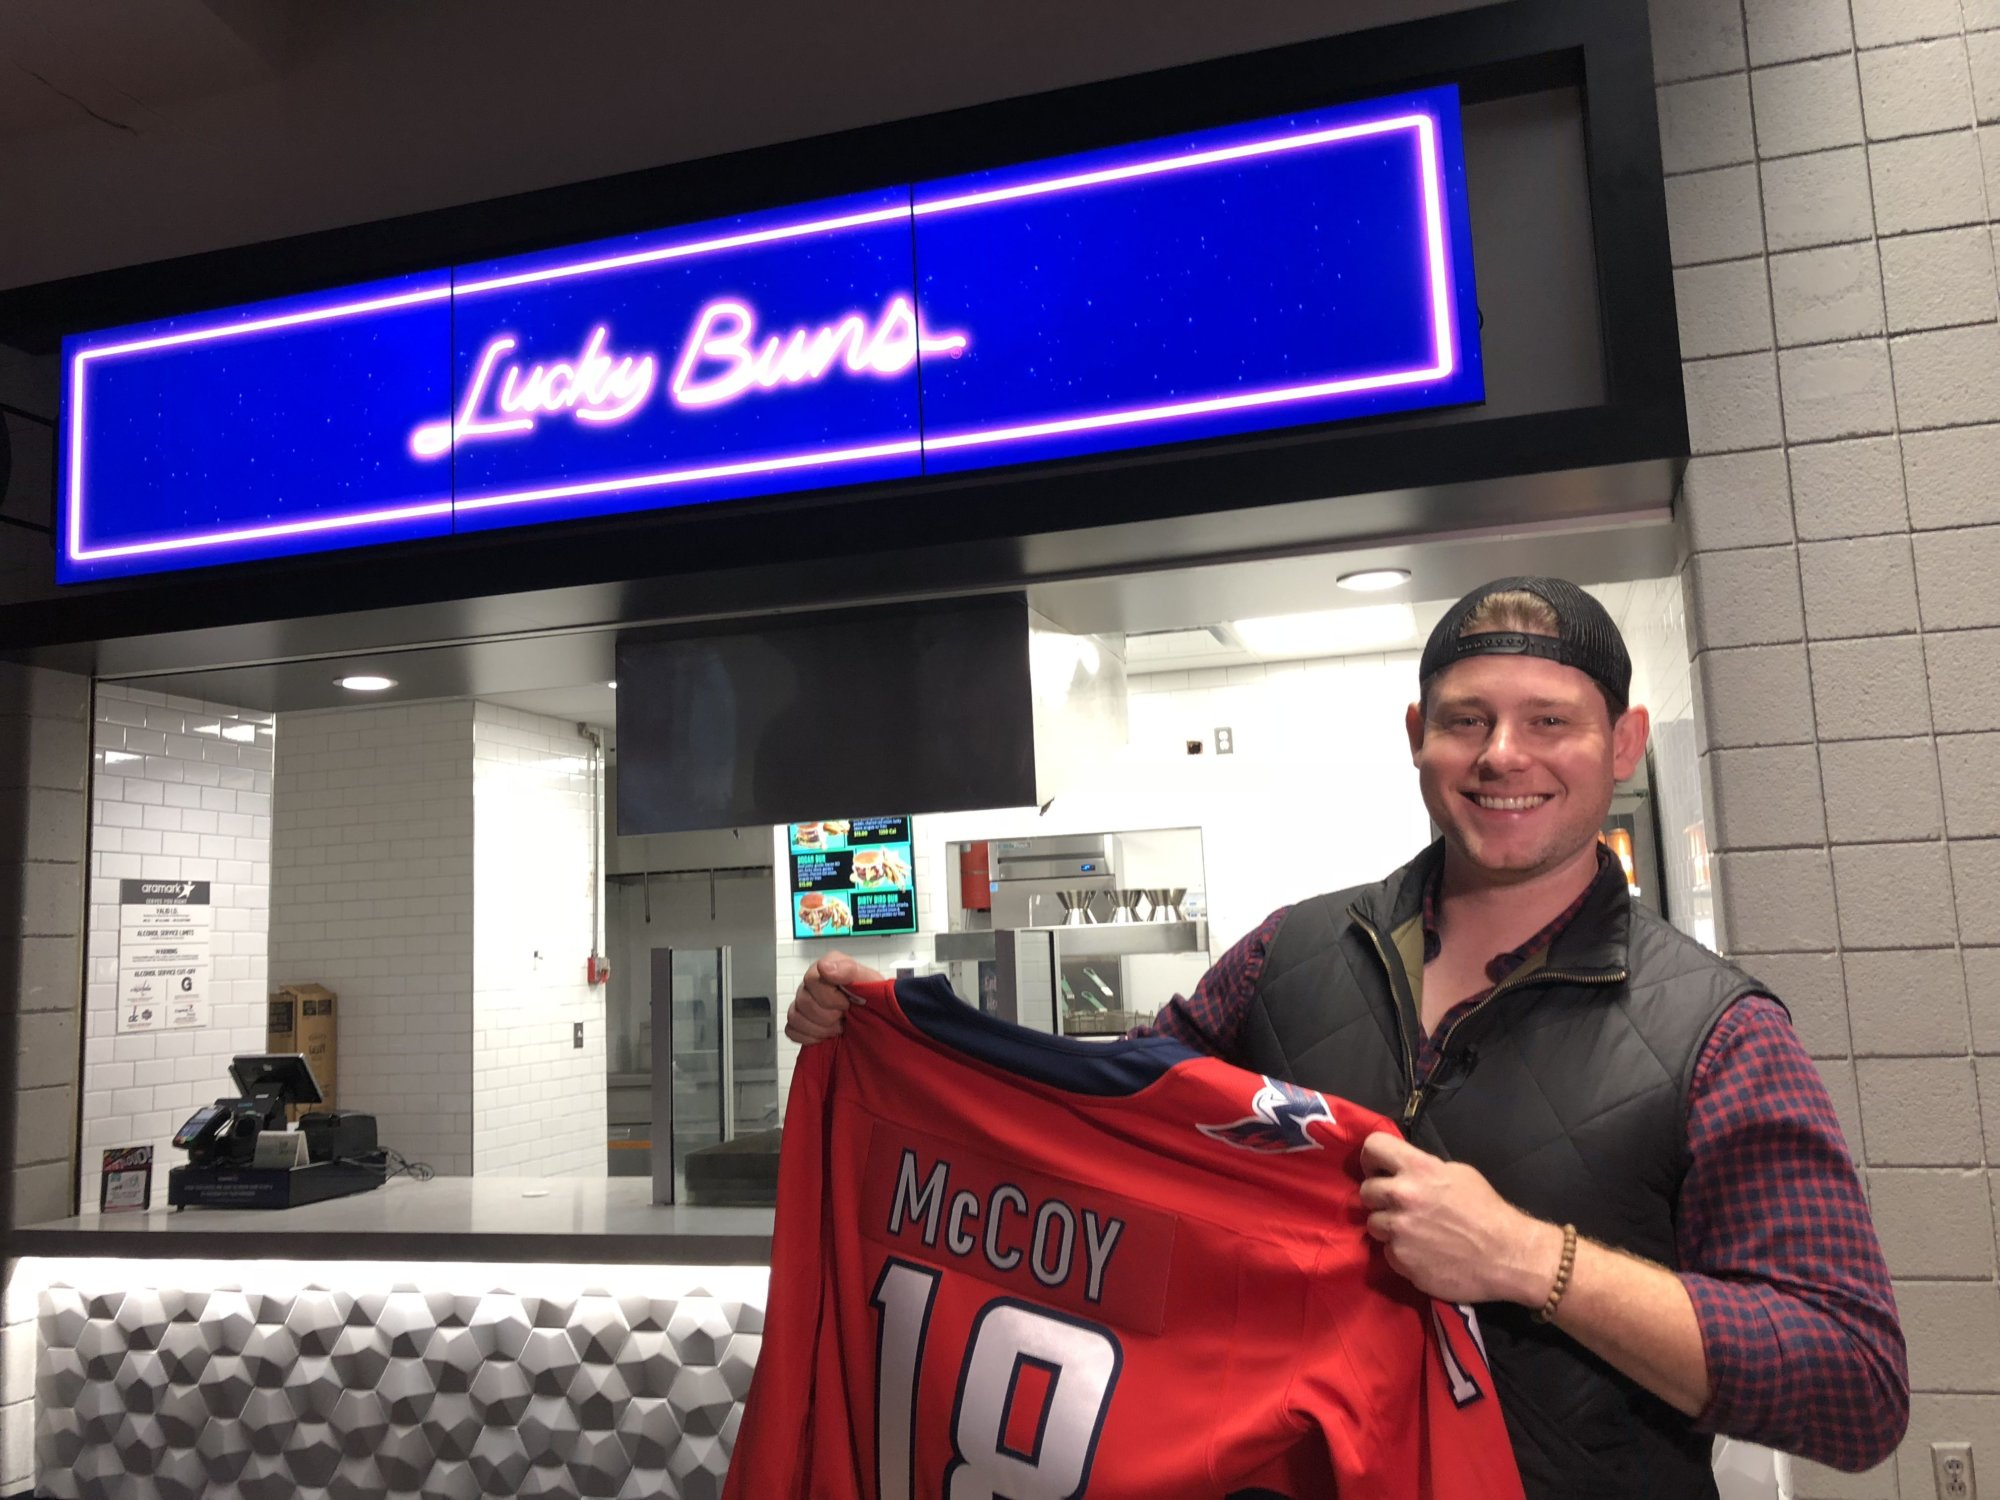 """I've been coming to this arena since I was a little kid,"" local Chef Alex McCoy of Lucky Buns said. The Lucky Buns menu features specialty burgers. ""I can't tell you how much it means to be able to come into this arena to cook for my friends and cook for other D.C. sports fans."" (WTOP/Kristi King)"